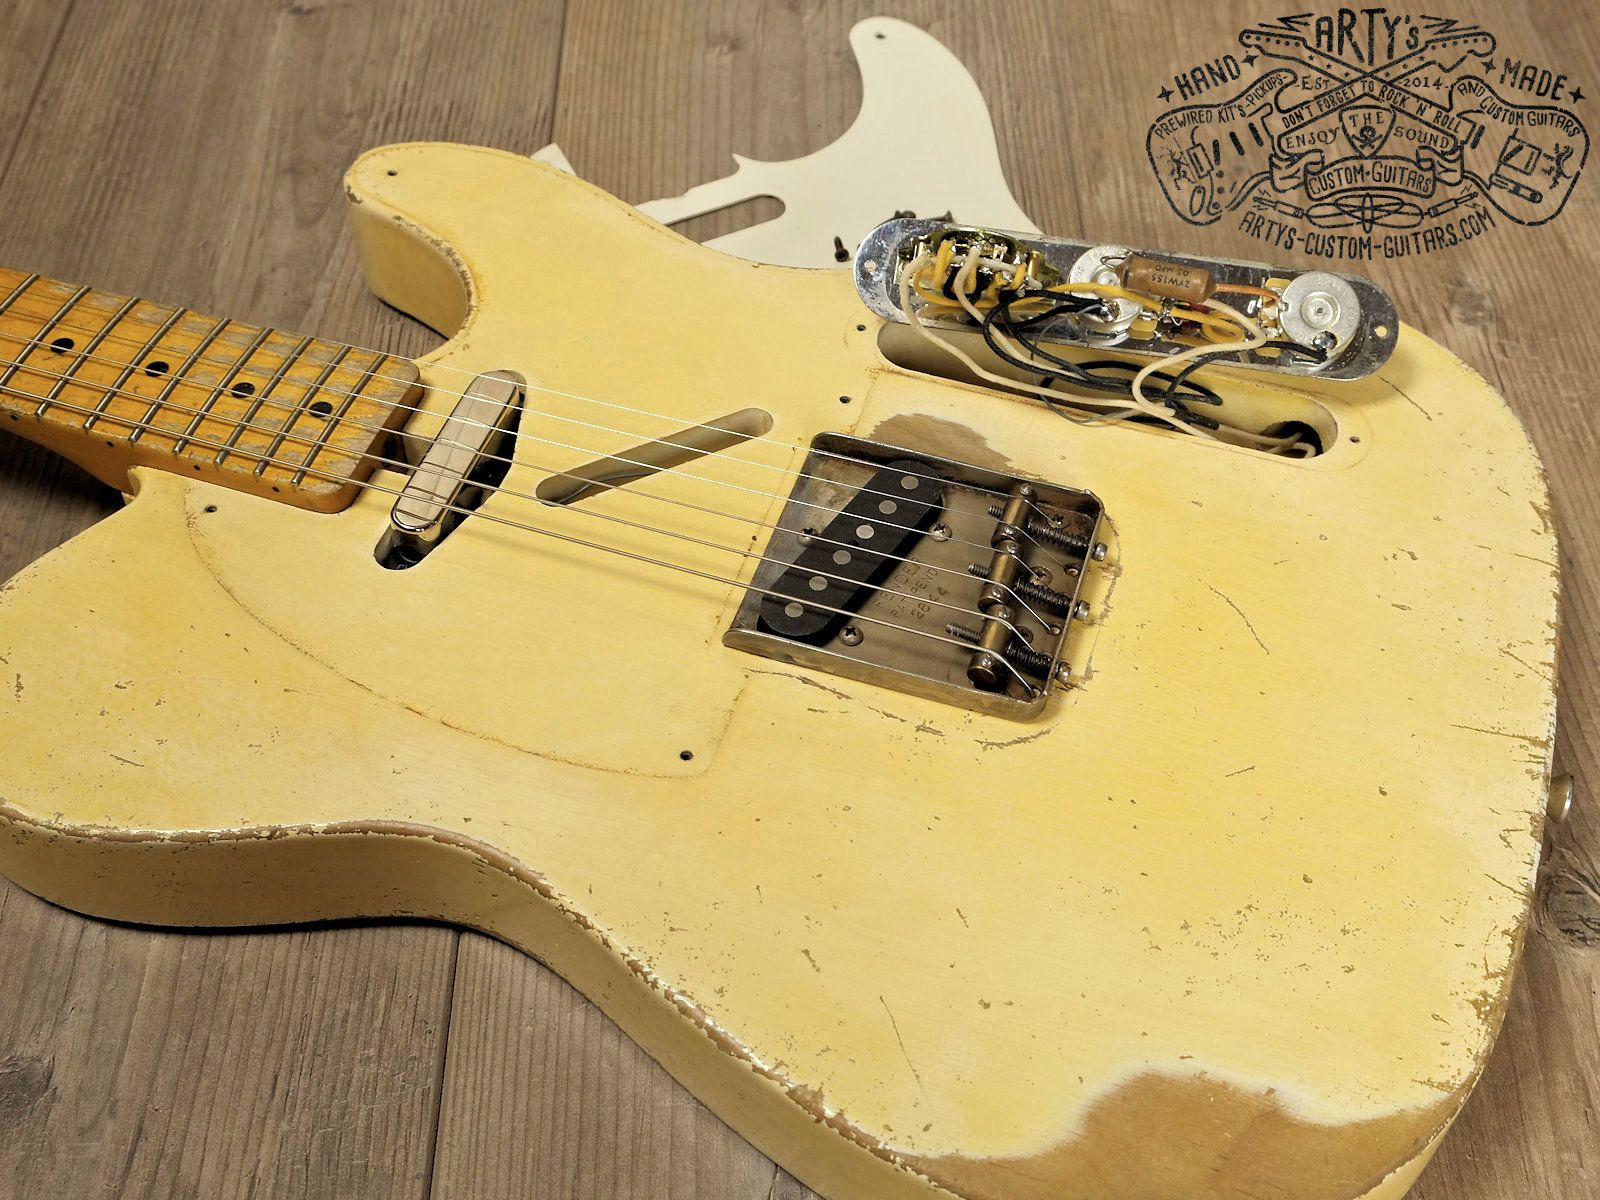 medium resolution of vintage blonde 1958 telecaster maple neck alder body nitro finish relic aged arty s custom guitars blond